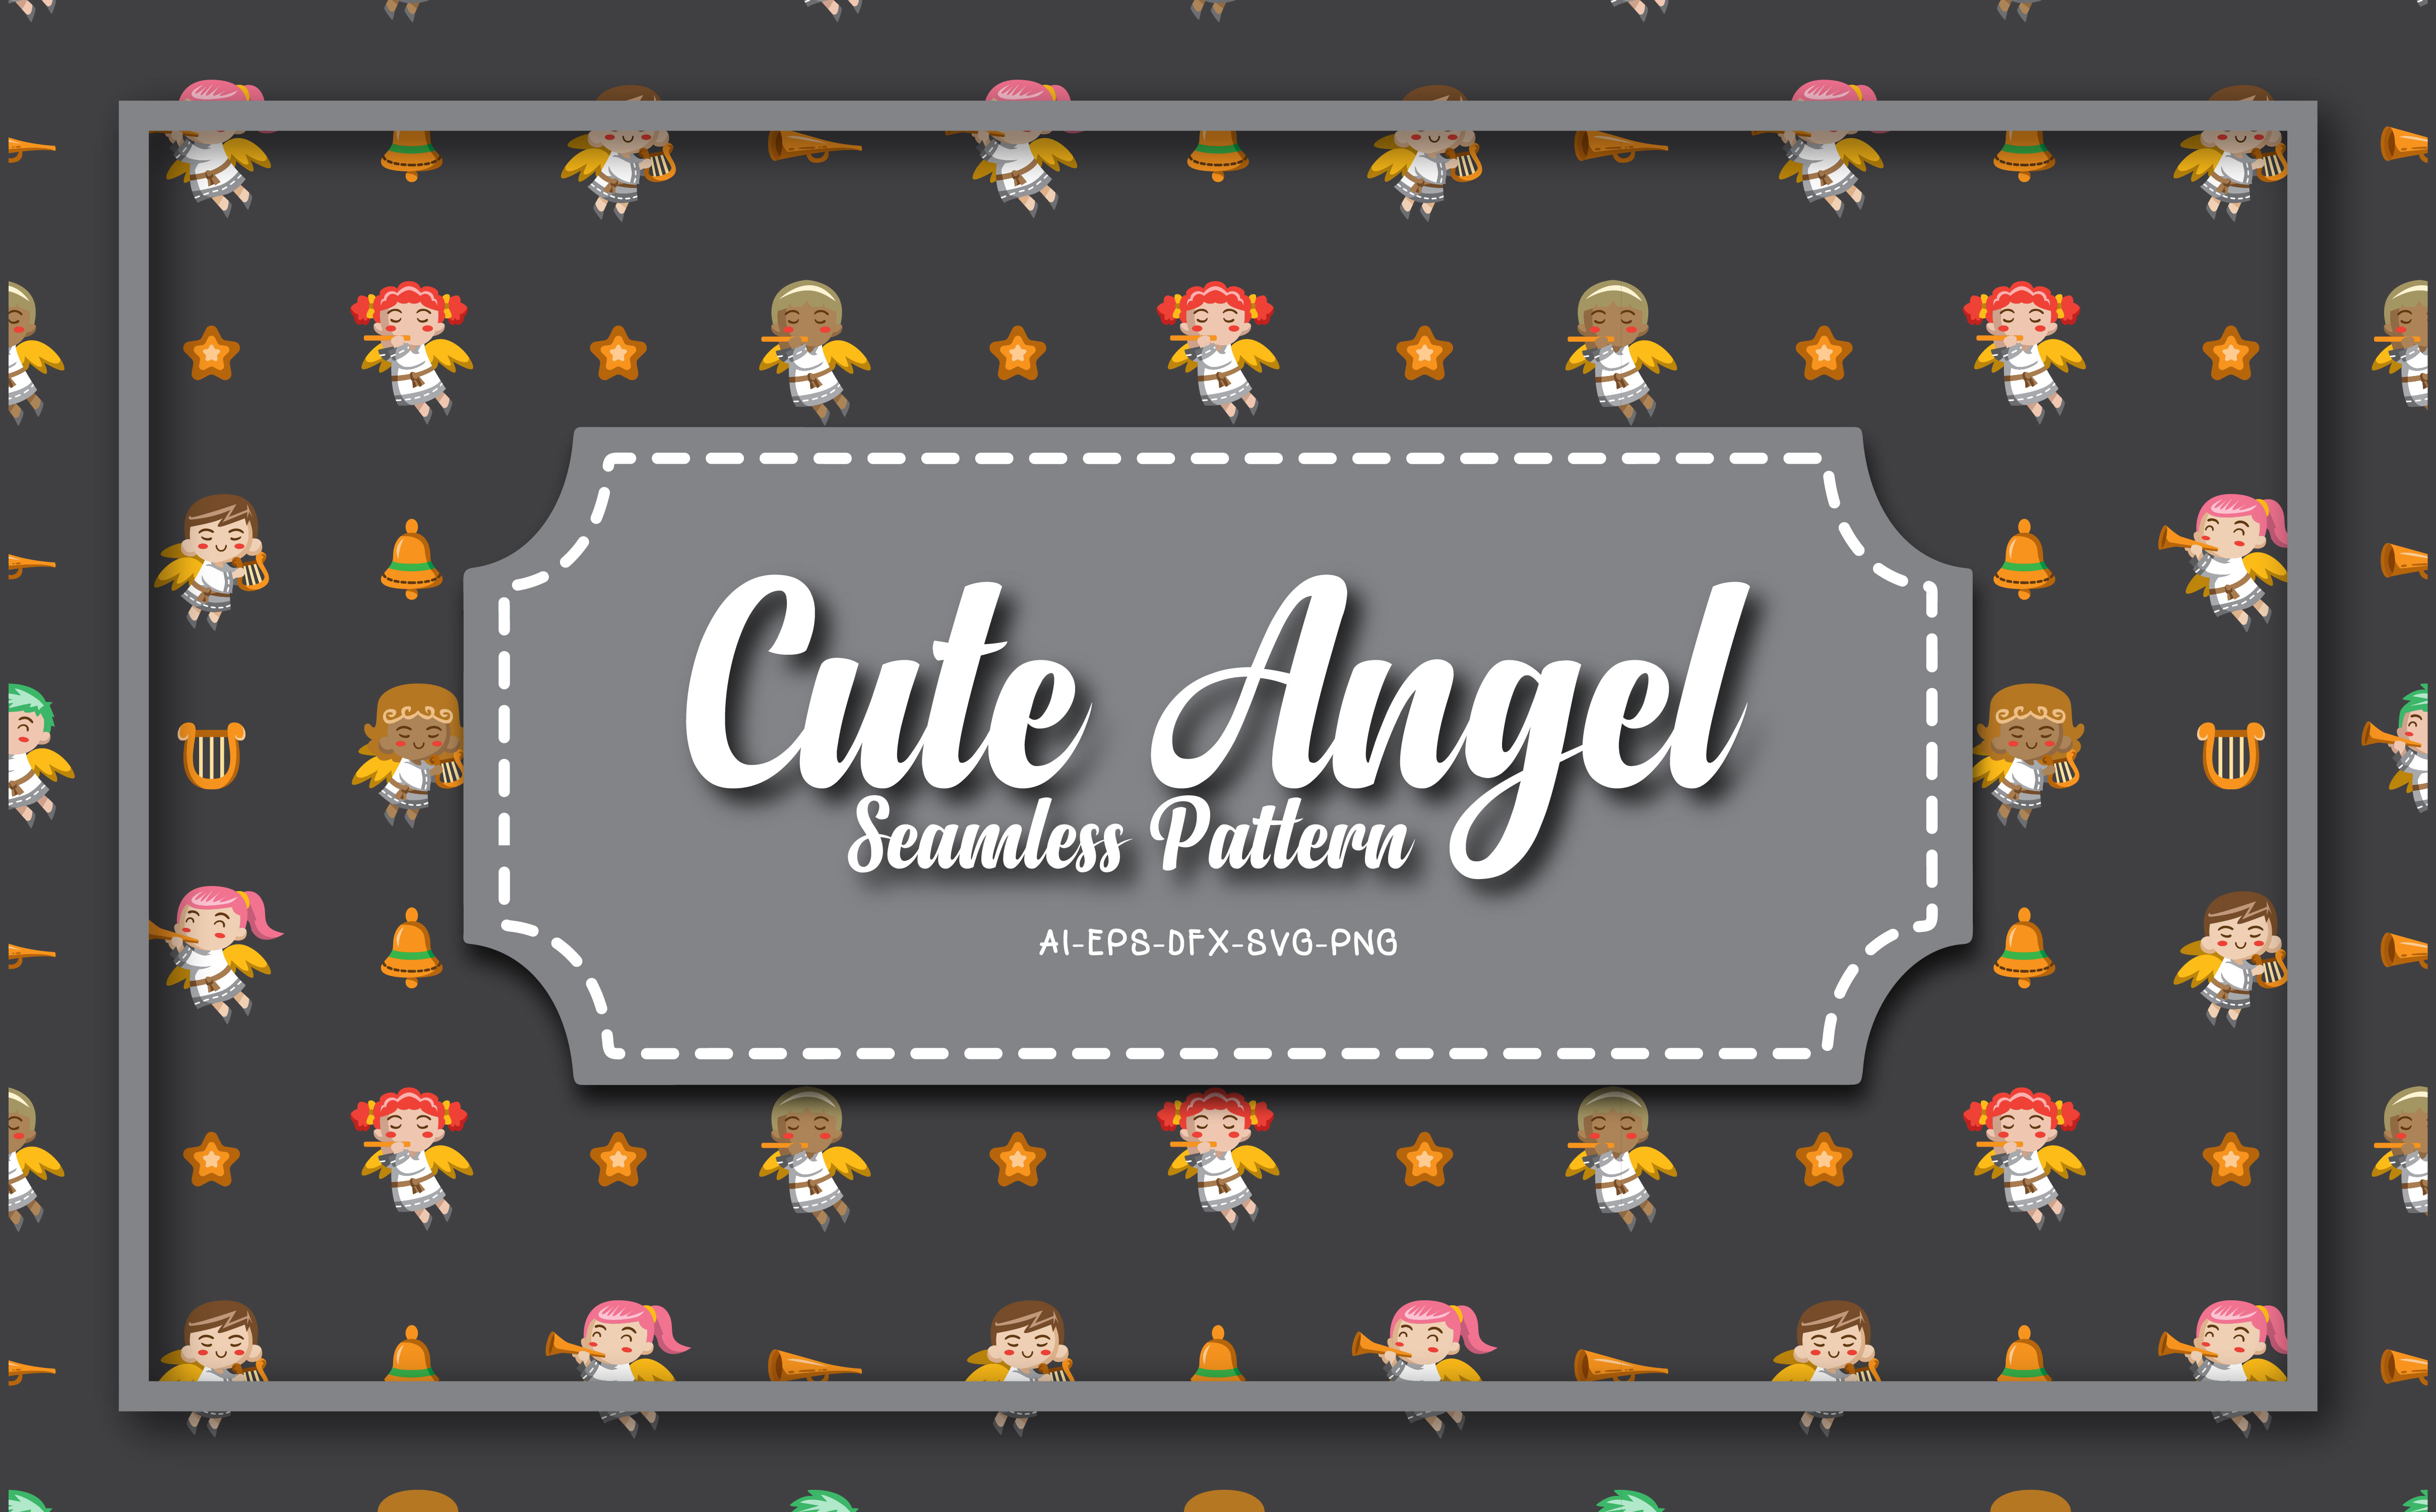 Download Free Seamless Patterns Cute Angel 17 Graphic By Bayu Baluwarta for Cricut Explore, Silhouette and other cutting machines.